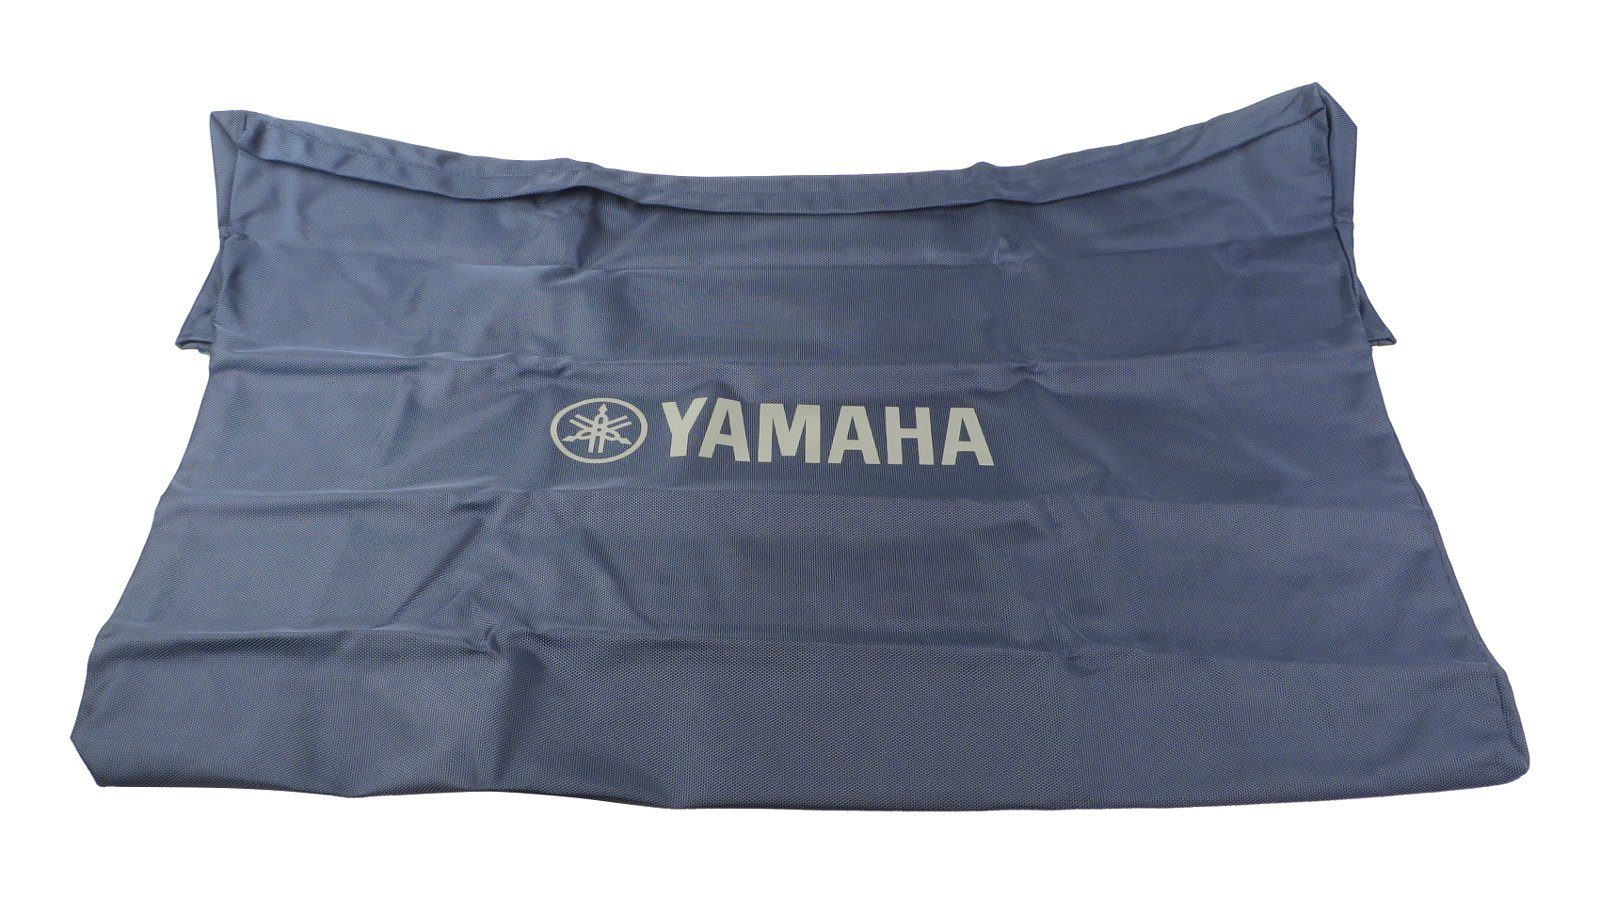 Yamaha ZH992700 Dust Cover for QL5 ZH992700